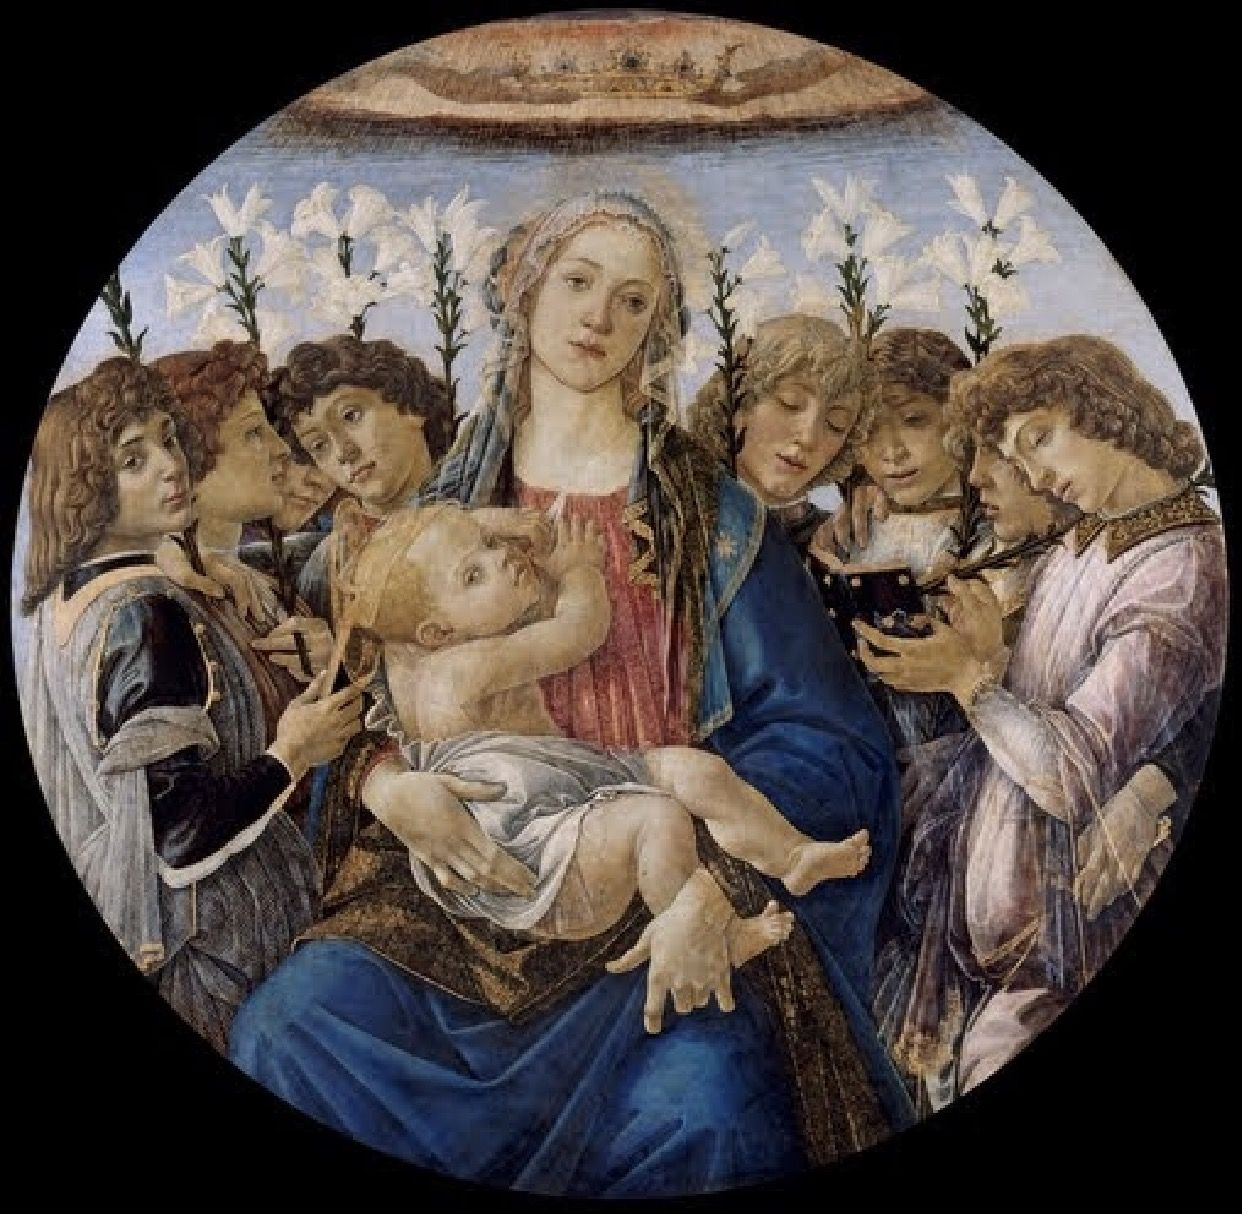 Title: Mary with the Child and Singing Angels  Creator: Sandro Botticelli  Date: 1477  Physical Dimensions: w135.0 x h135.0 cm  Type: Painting   Medium: Oil on poplar wood